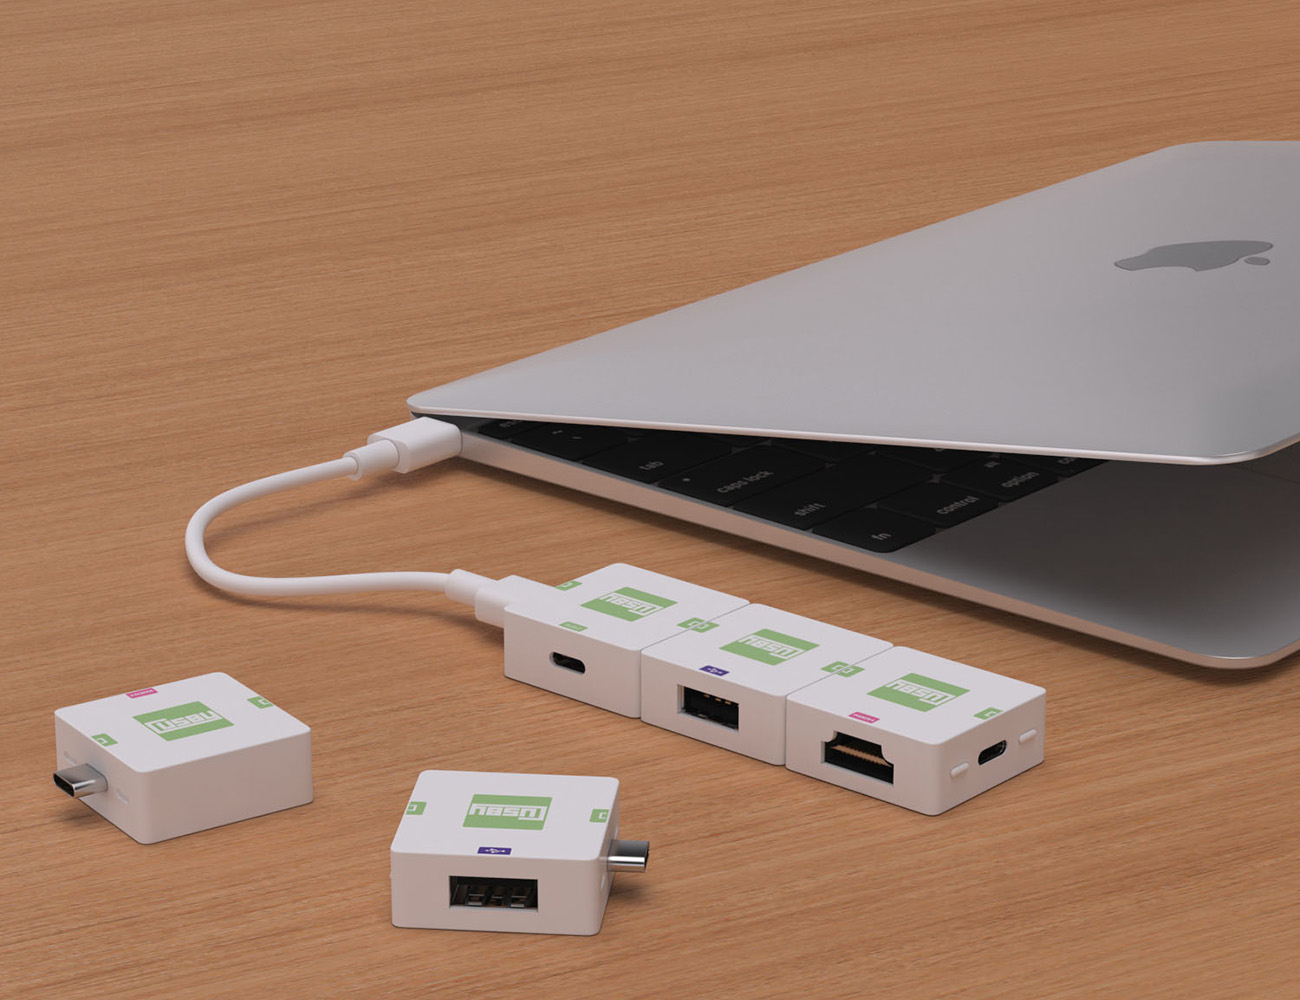 Cusby The First USB-C Modular & Expandable Solution for the New MacBook